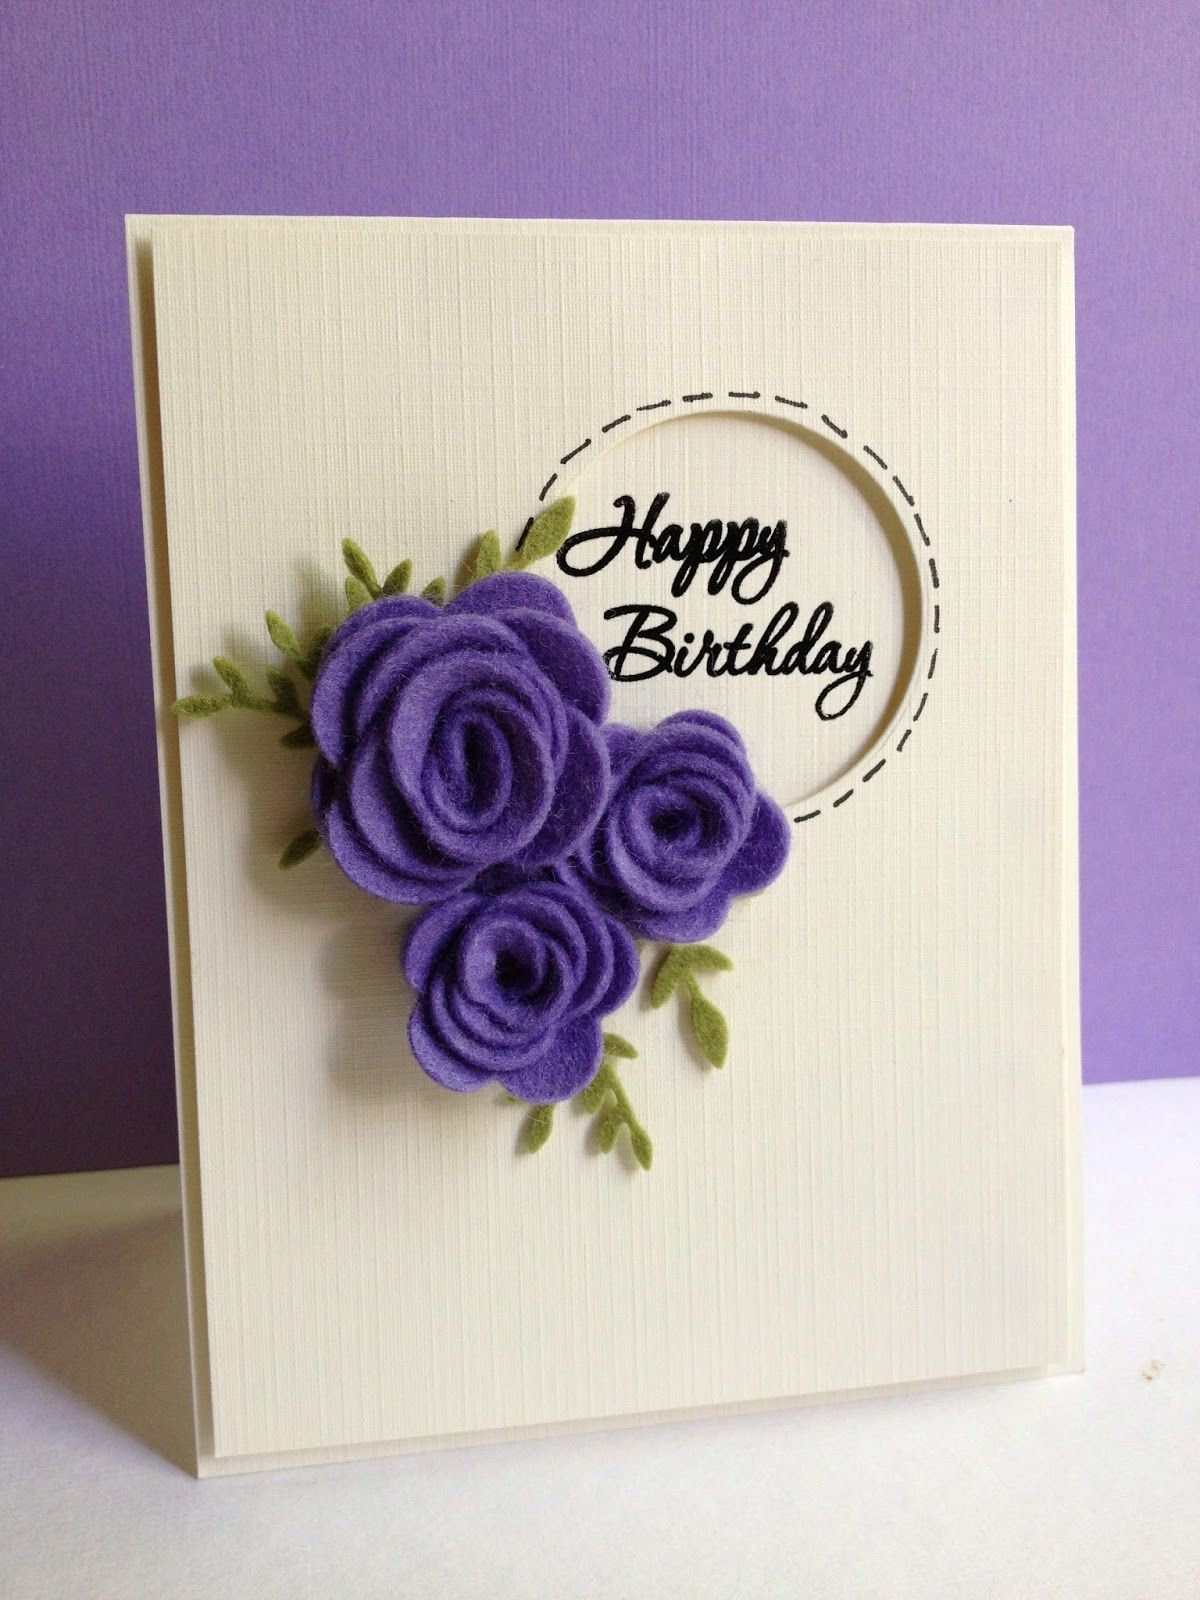 Off White And Purple Handmade Happy Birthday Cards Trendy Mods